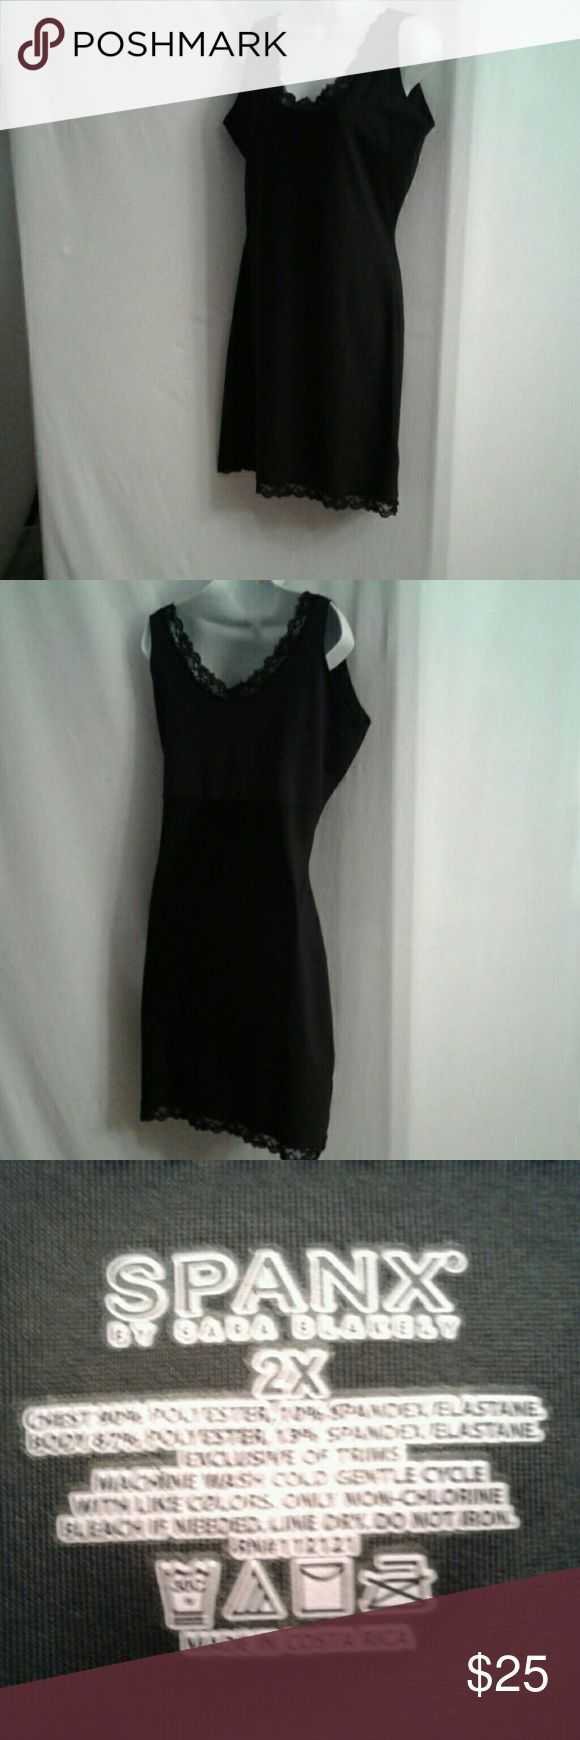 Spanx black slip shaper sz 2X This is a black full slip shaper in EUC. The rounded neck, front and back, is trimmed in black lace. It is empire waisted, so the spandex/elastane doesn't restrict the ta-tas. SPANX Intimates & Sleepwear Shapewear